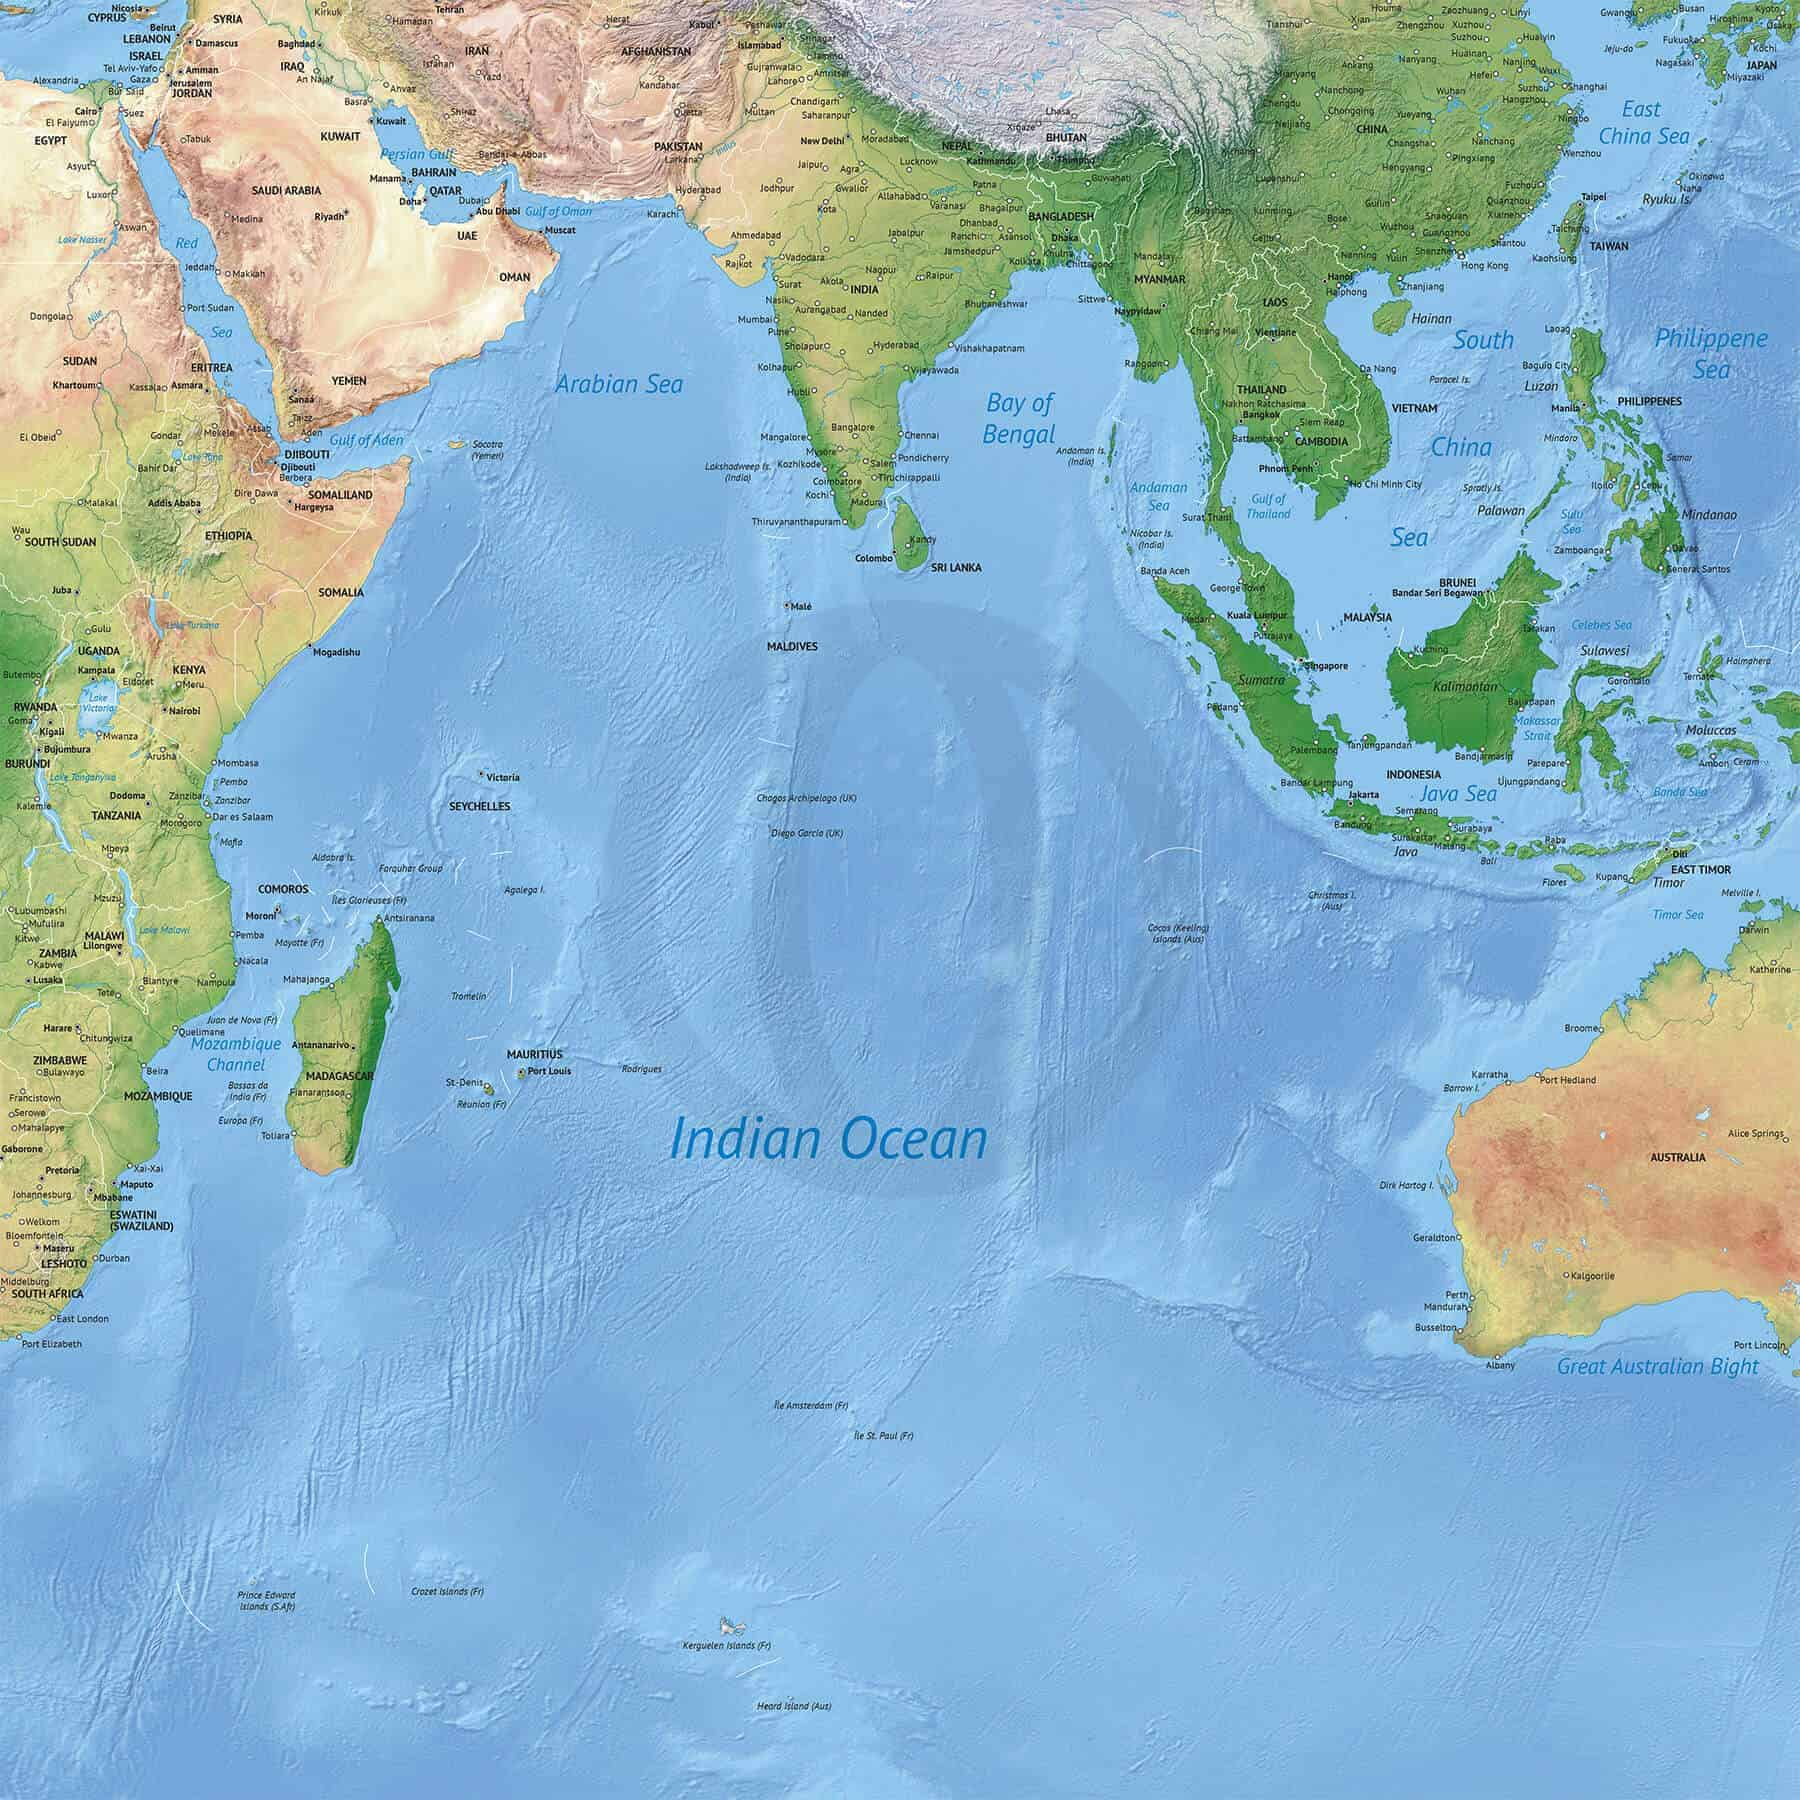 Stock map of Indian Ocean